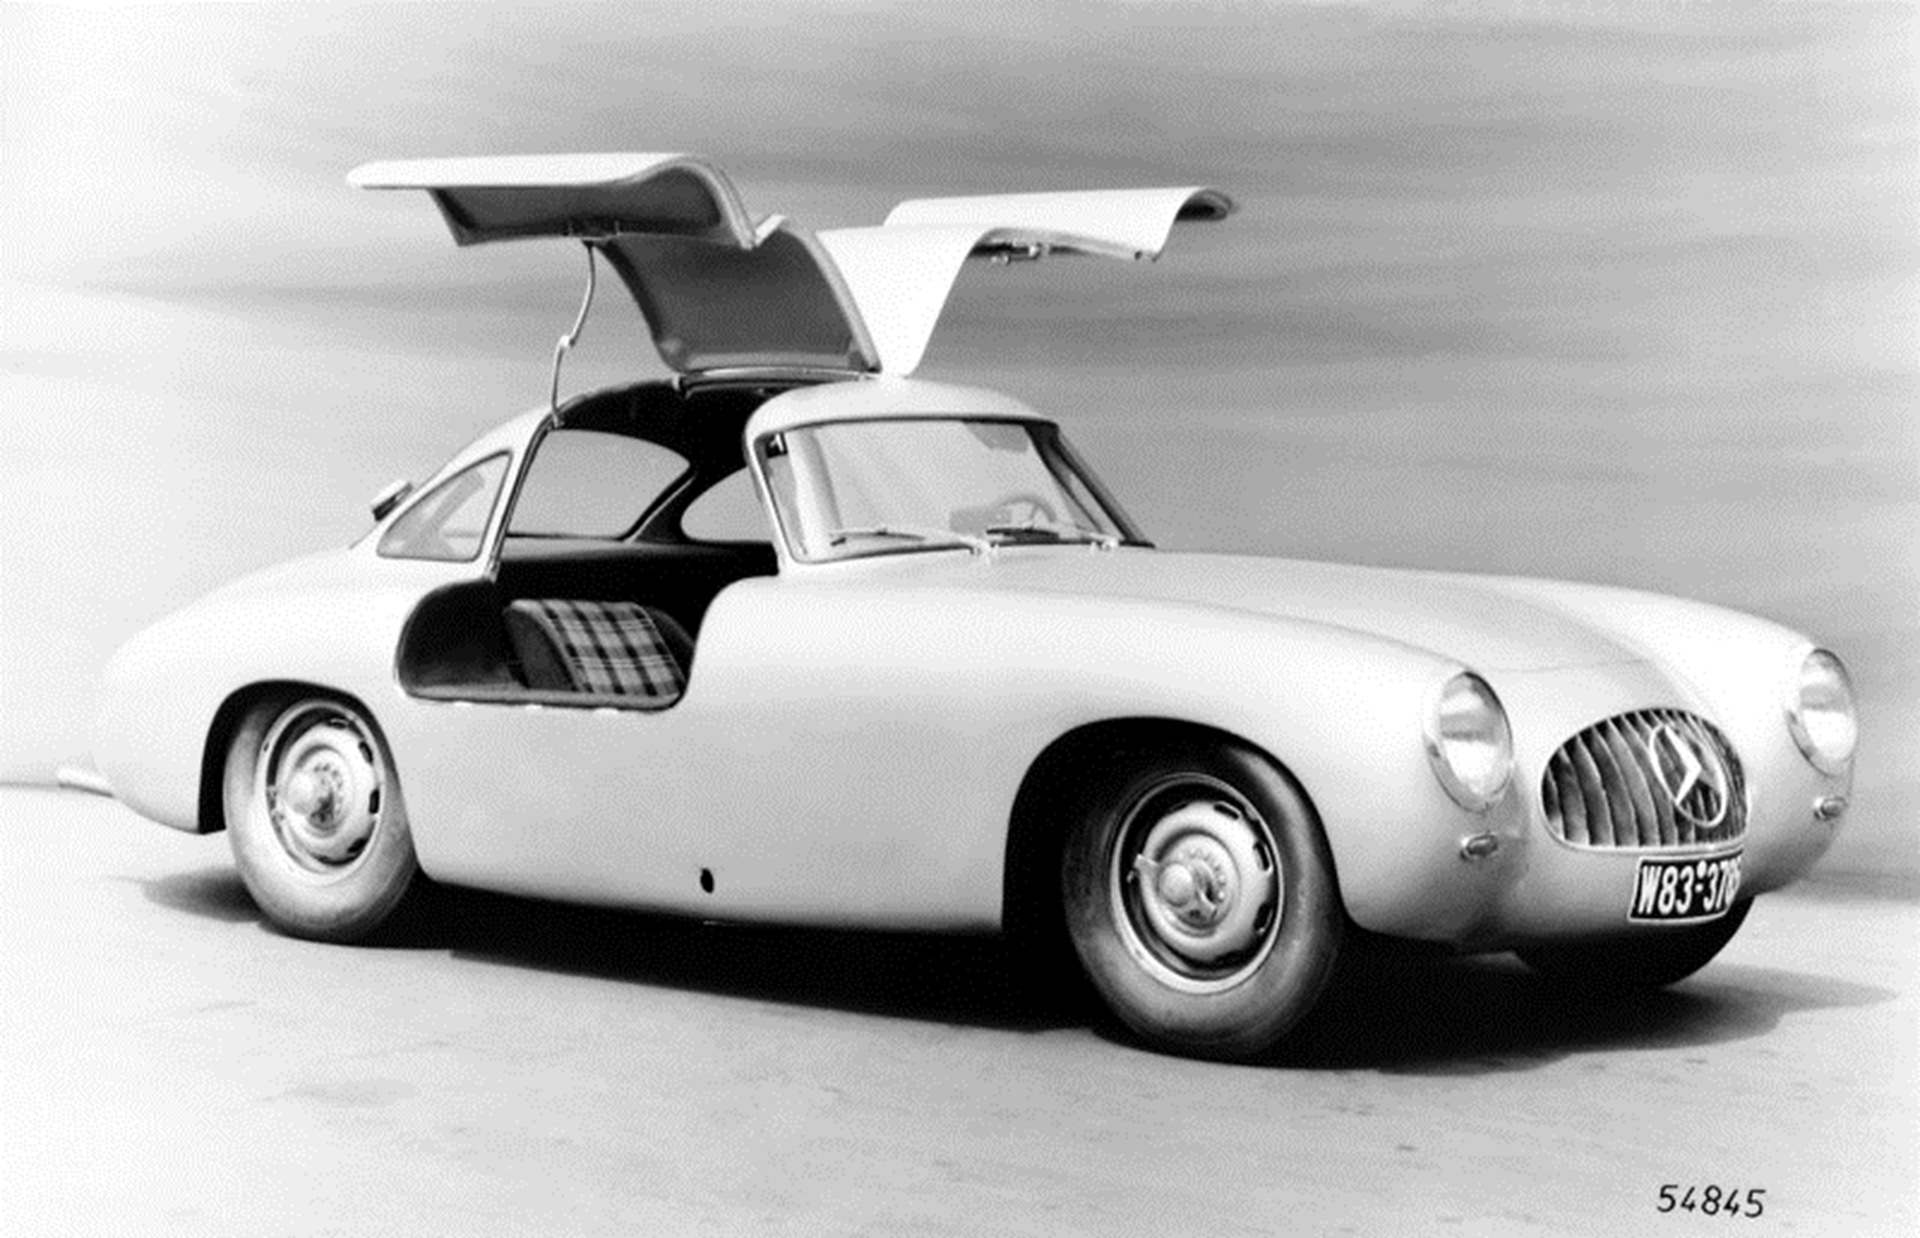 The history of the Mercedes Benz SL Class